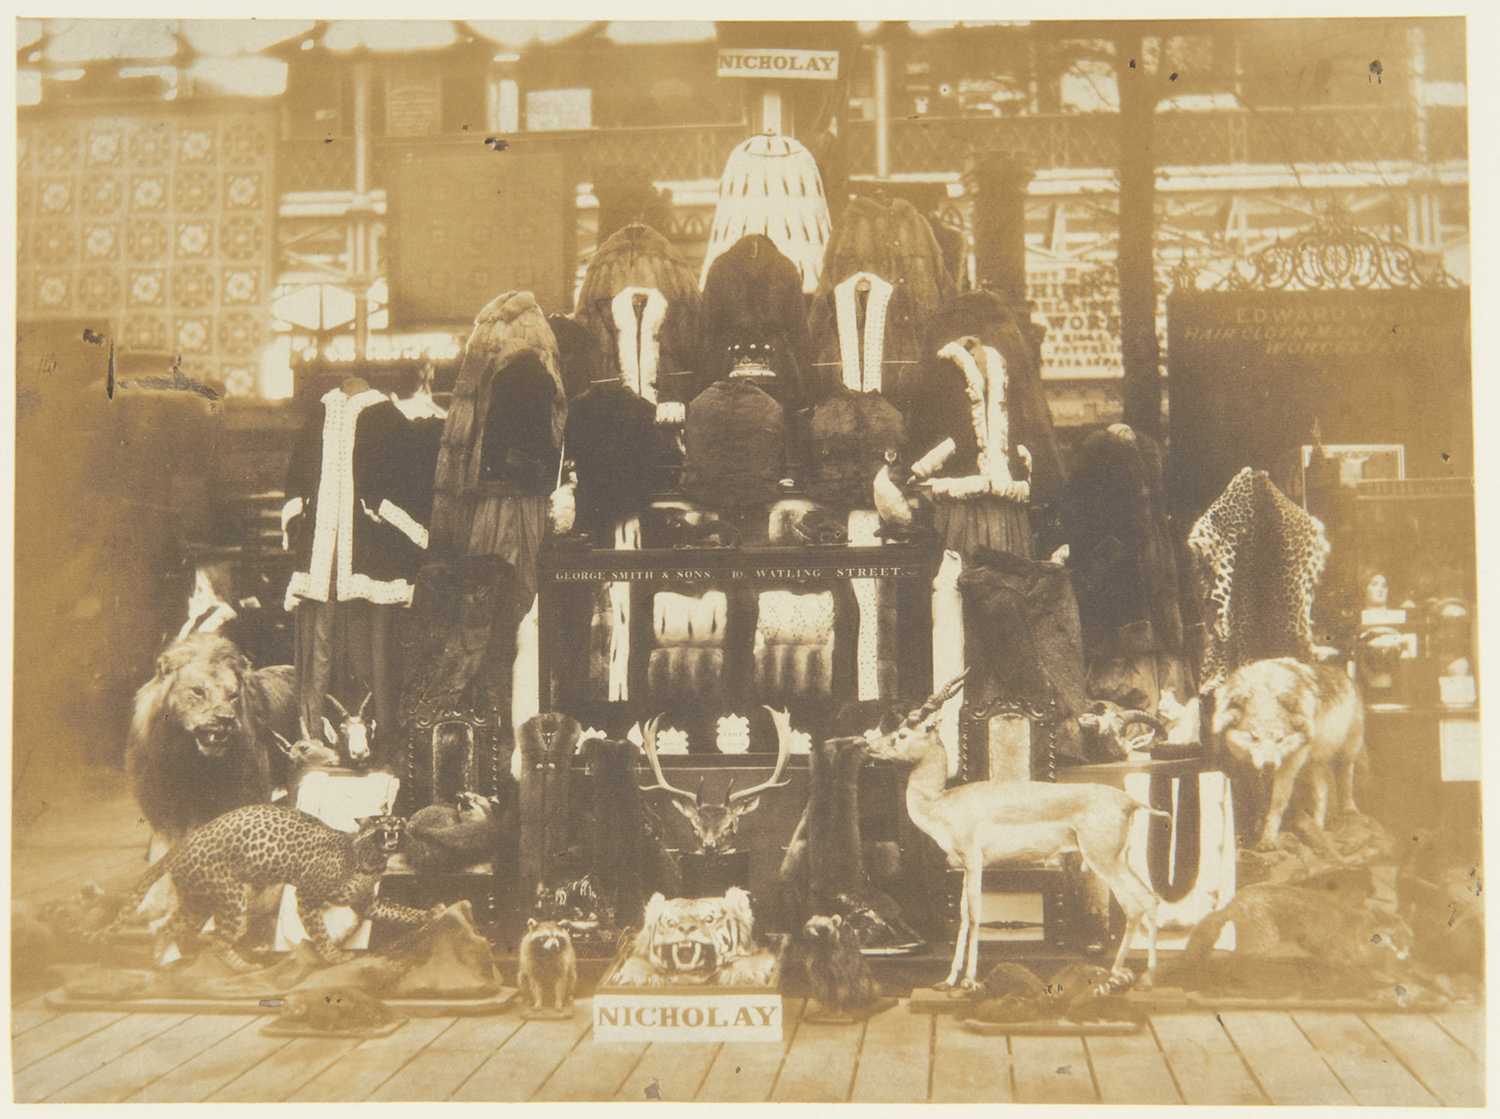 Photograph showing a collection of furs and taxidermy assembled by Nicholay and Son, London and exhibited at the Great Exhibition by Claude-Marie Ferrier, 1851.